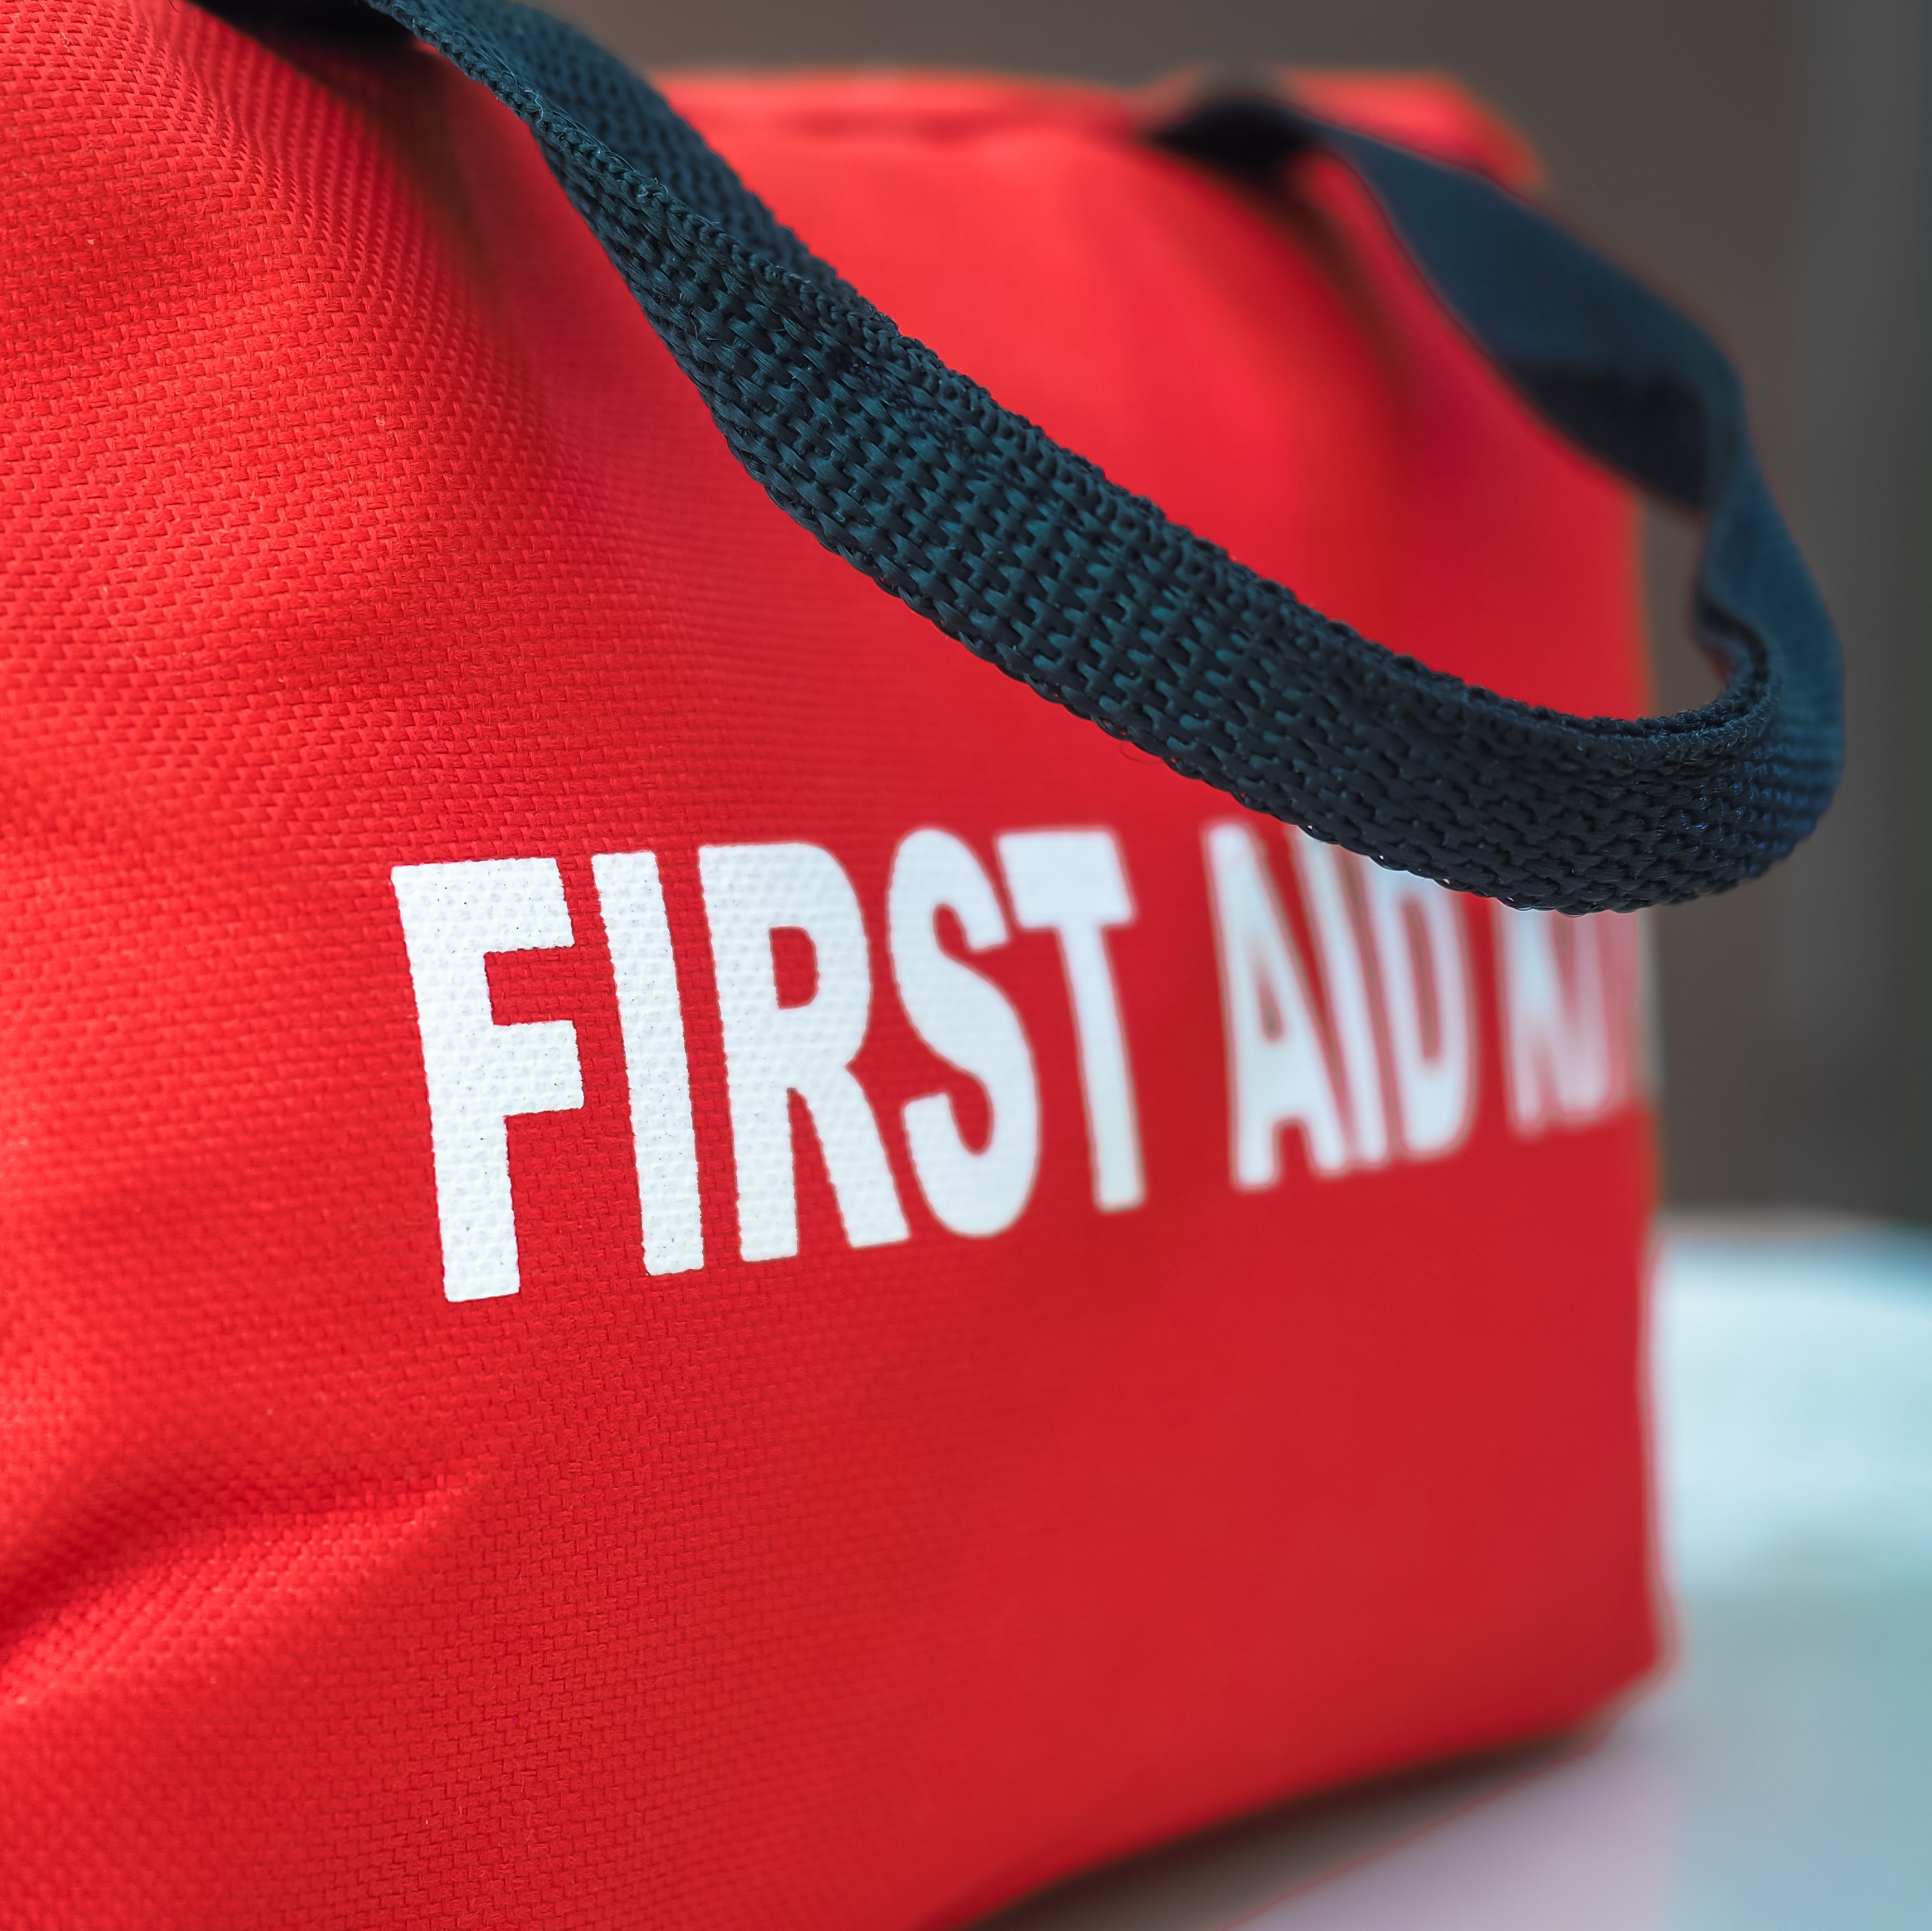 a red canvas bag with the words First Aid Kit